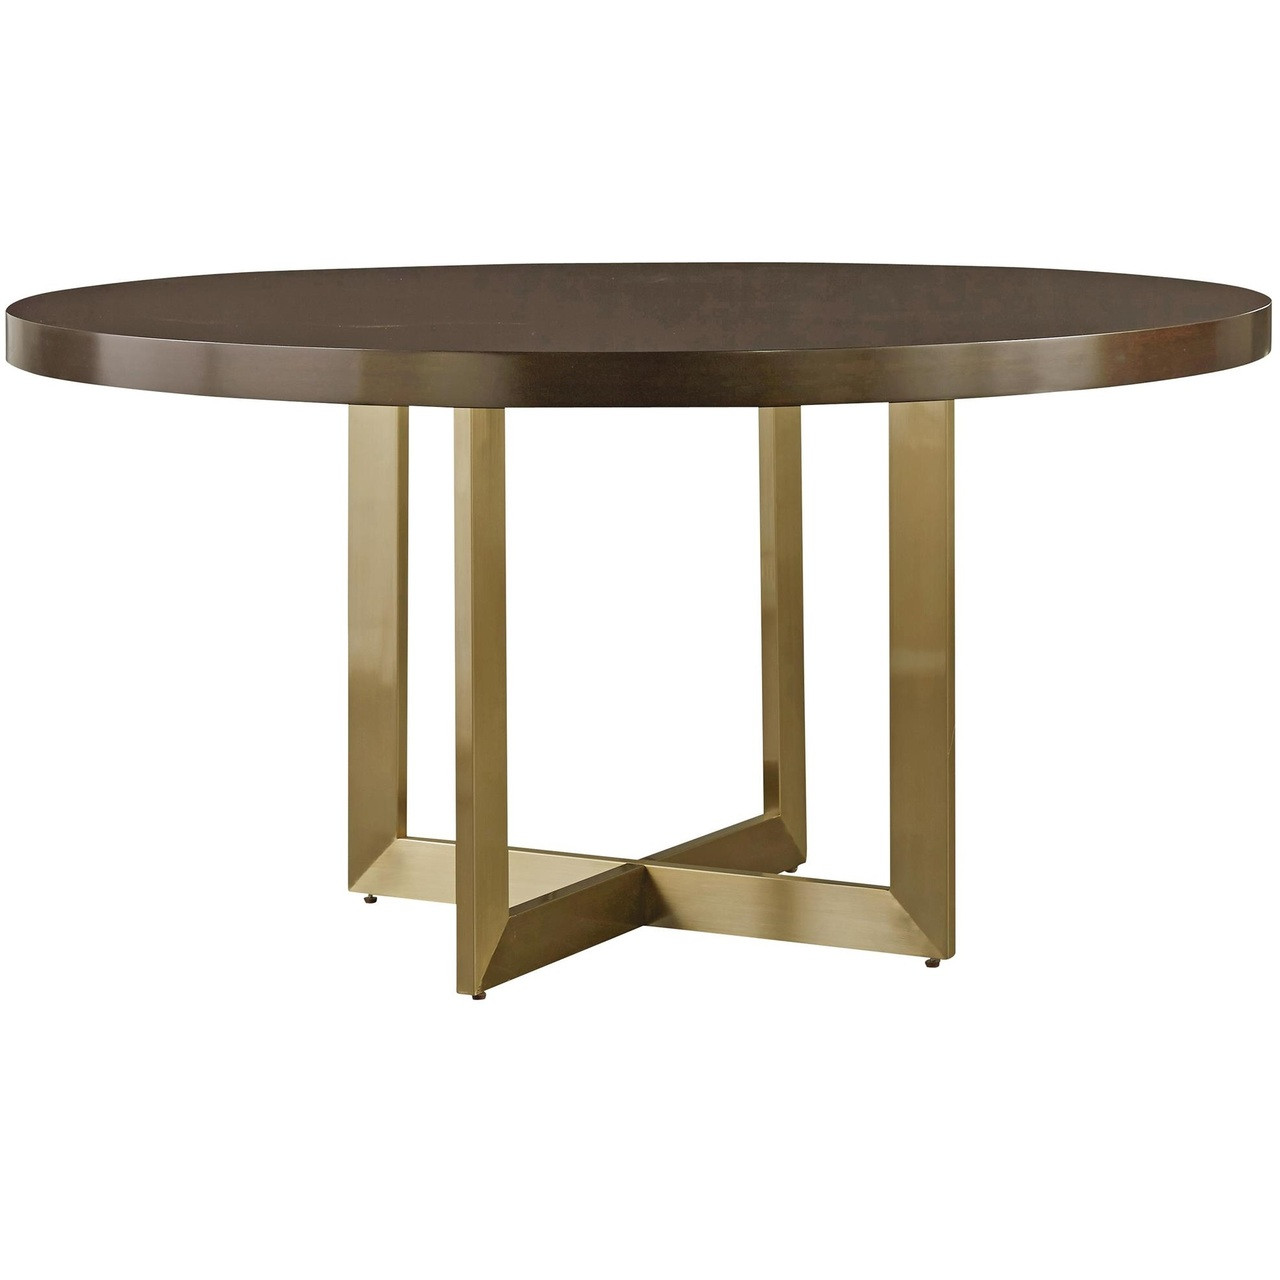 Wood Round Dining Table: Gibson Modern Brushed Gold Round Wood Dining Table 54